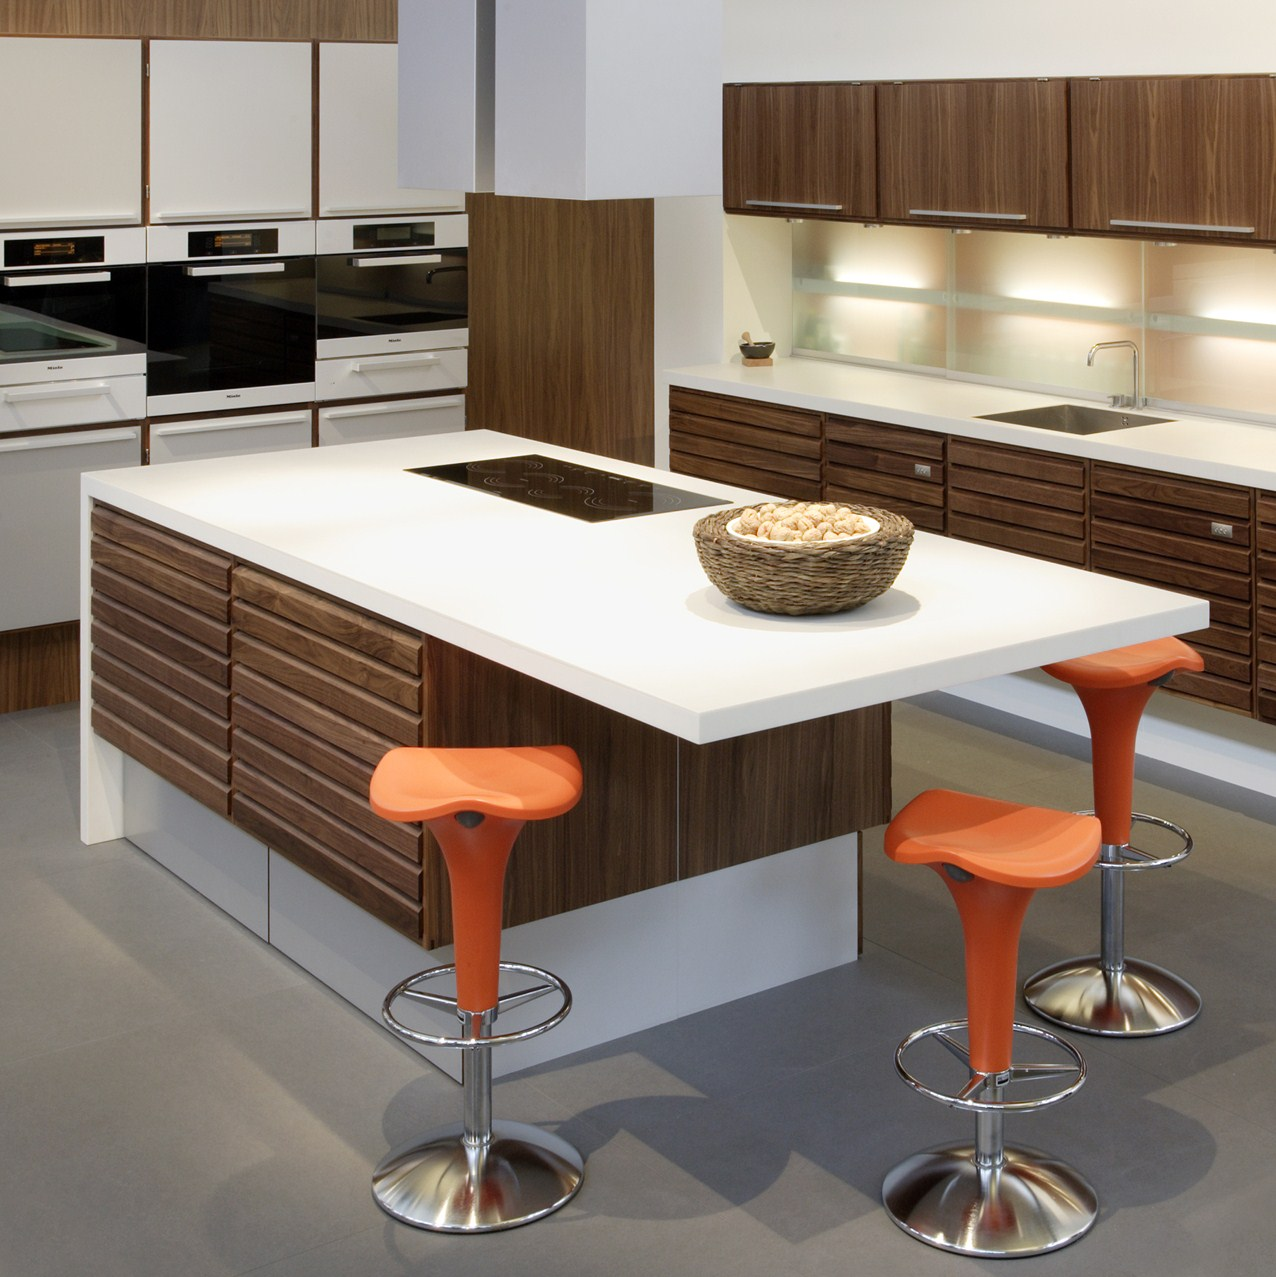 Experts of kitchen worktops of uk on corian repair - Encimeras de cocina rusticas ...